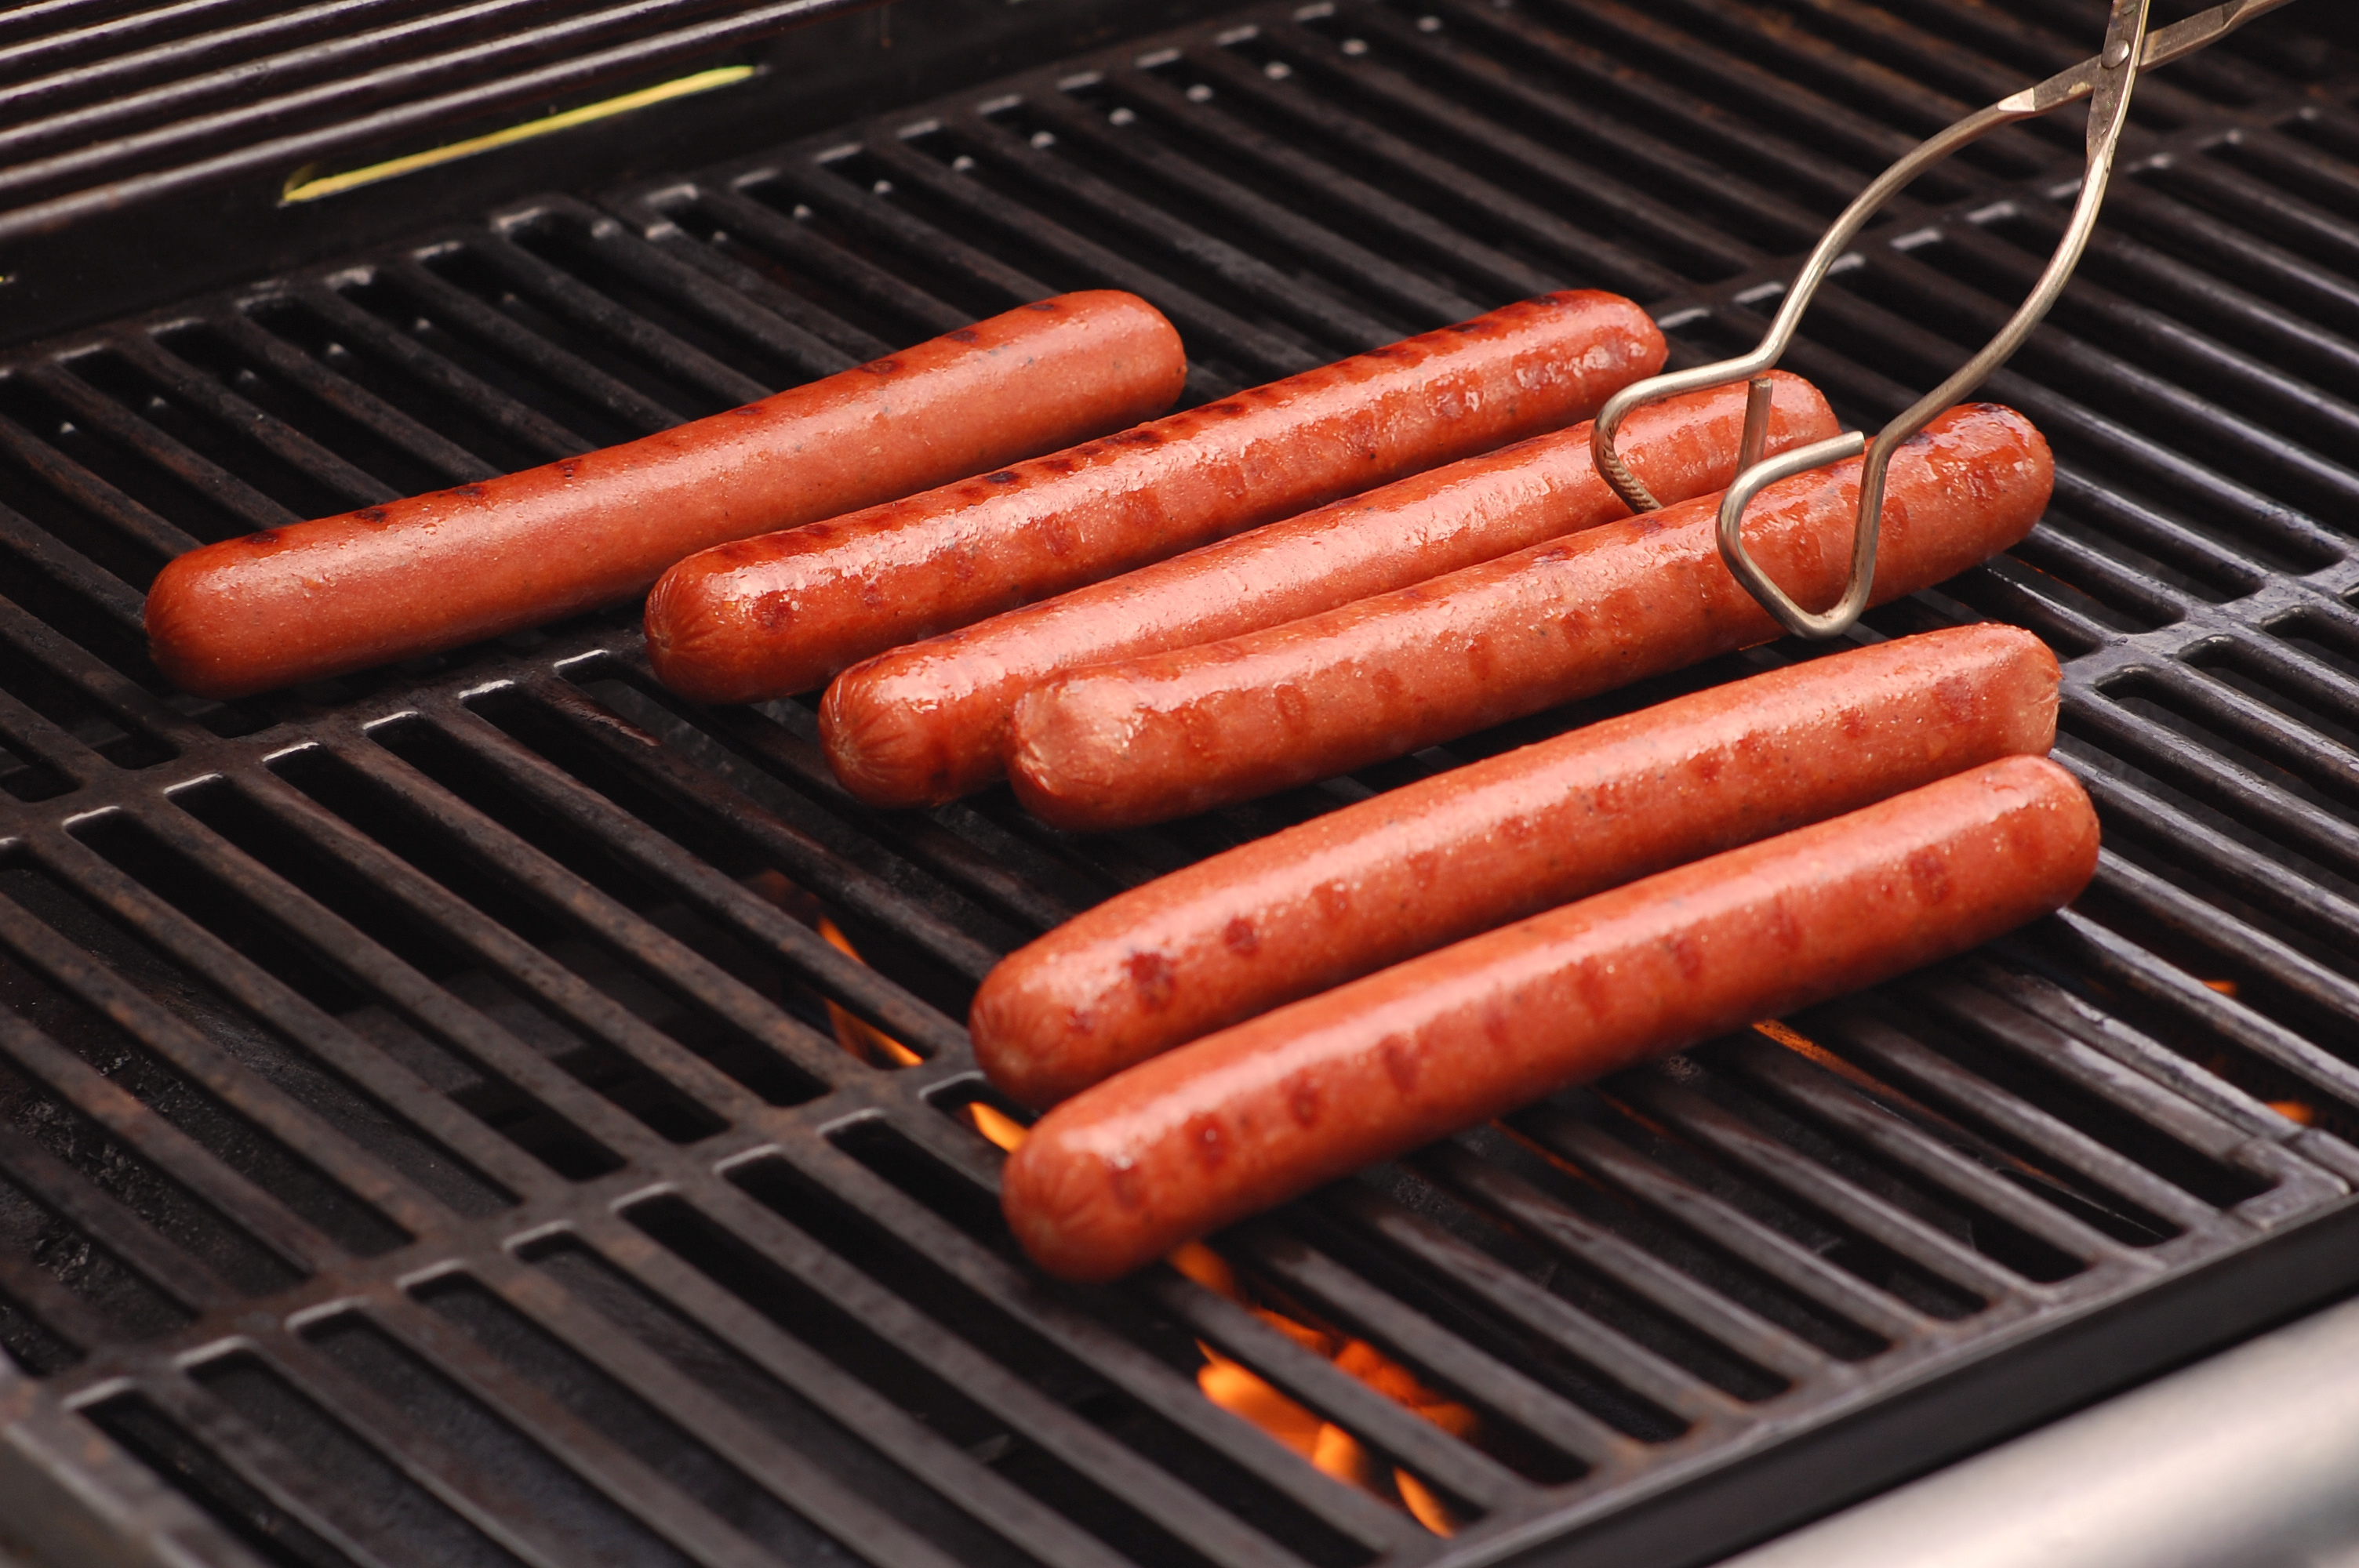 Six hot dogs cooking on a gas-fired barbeque grill.